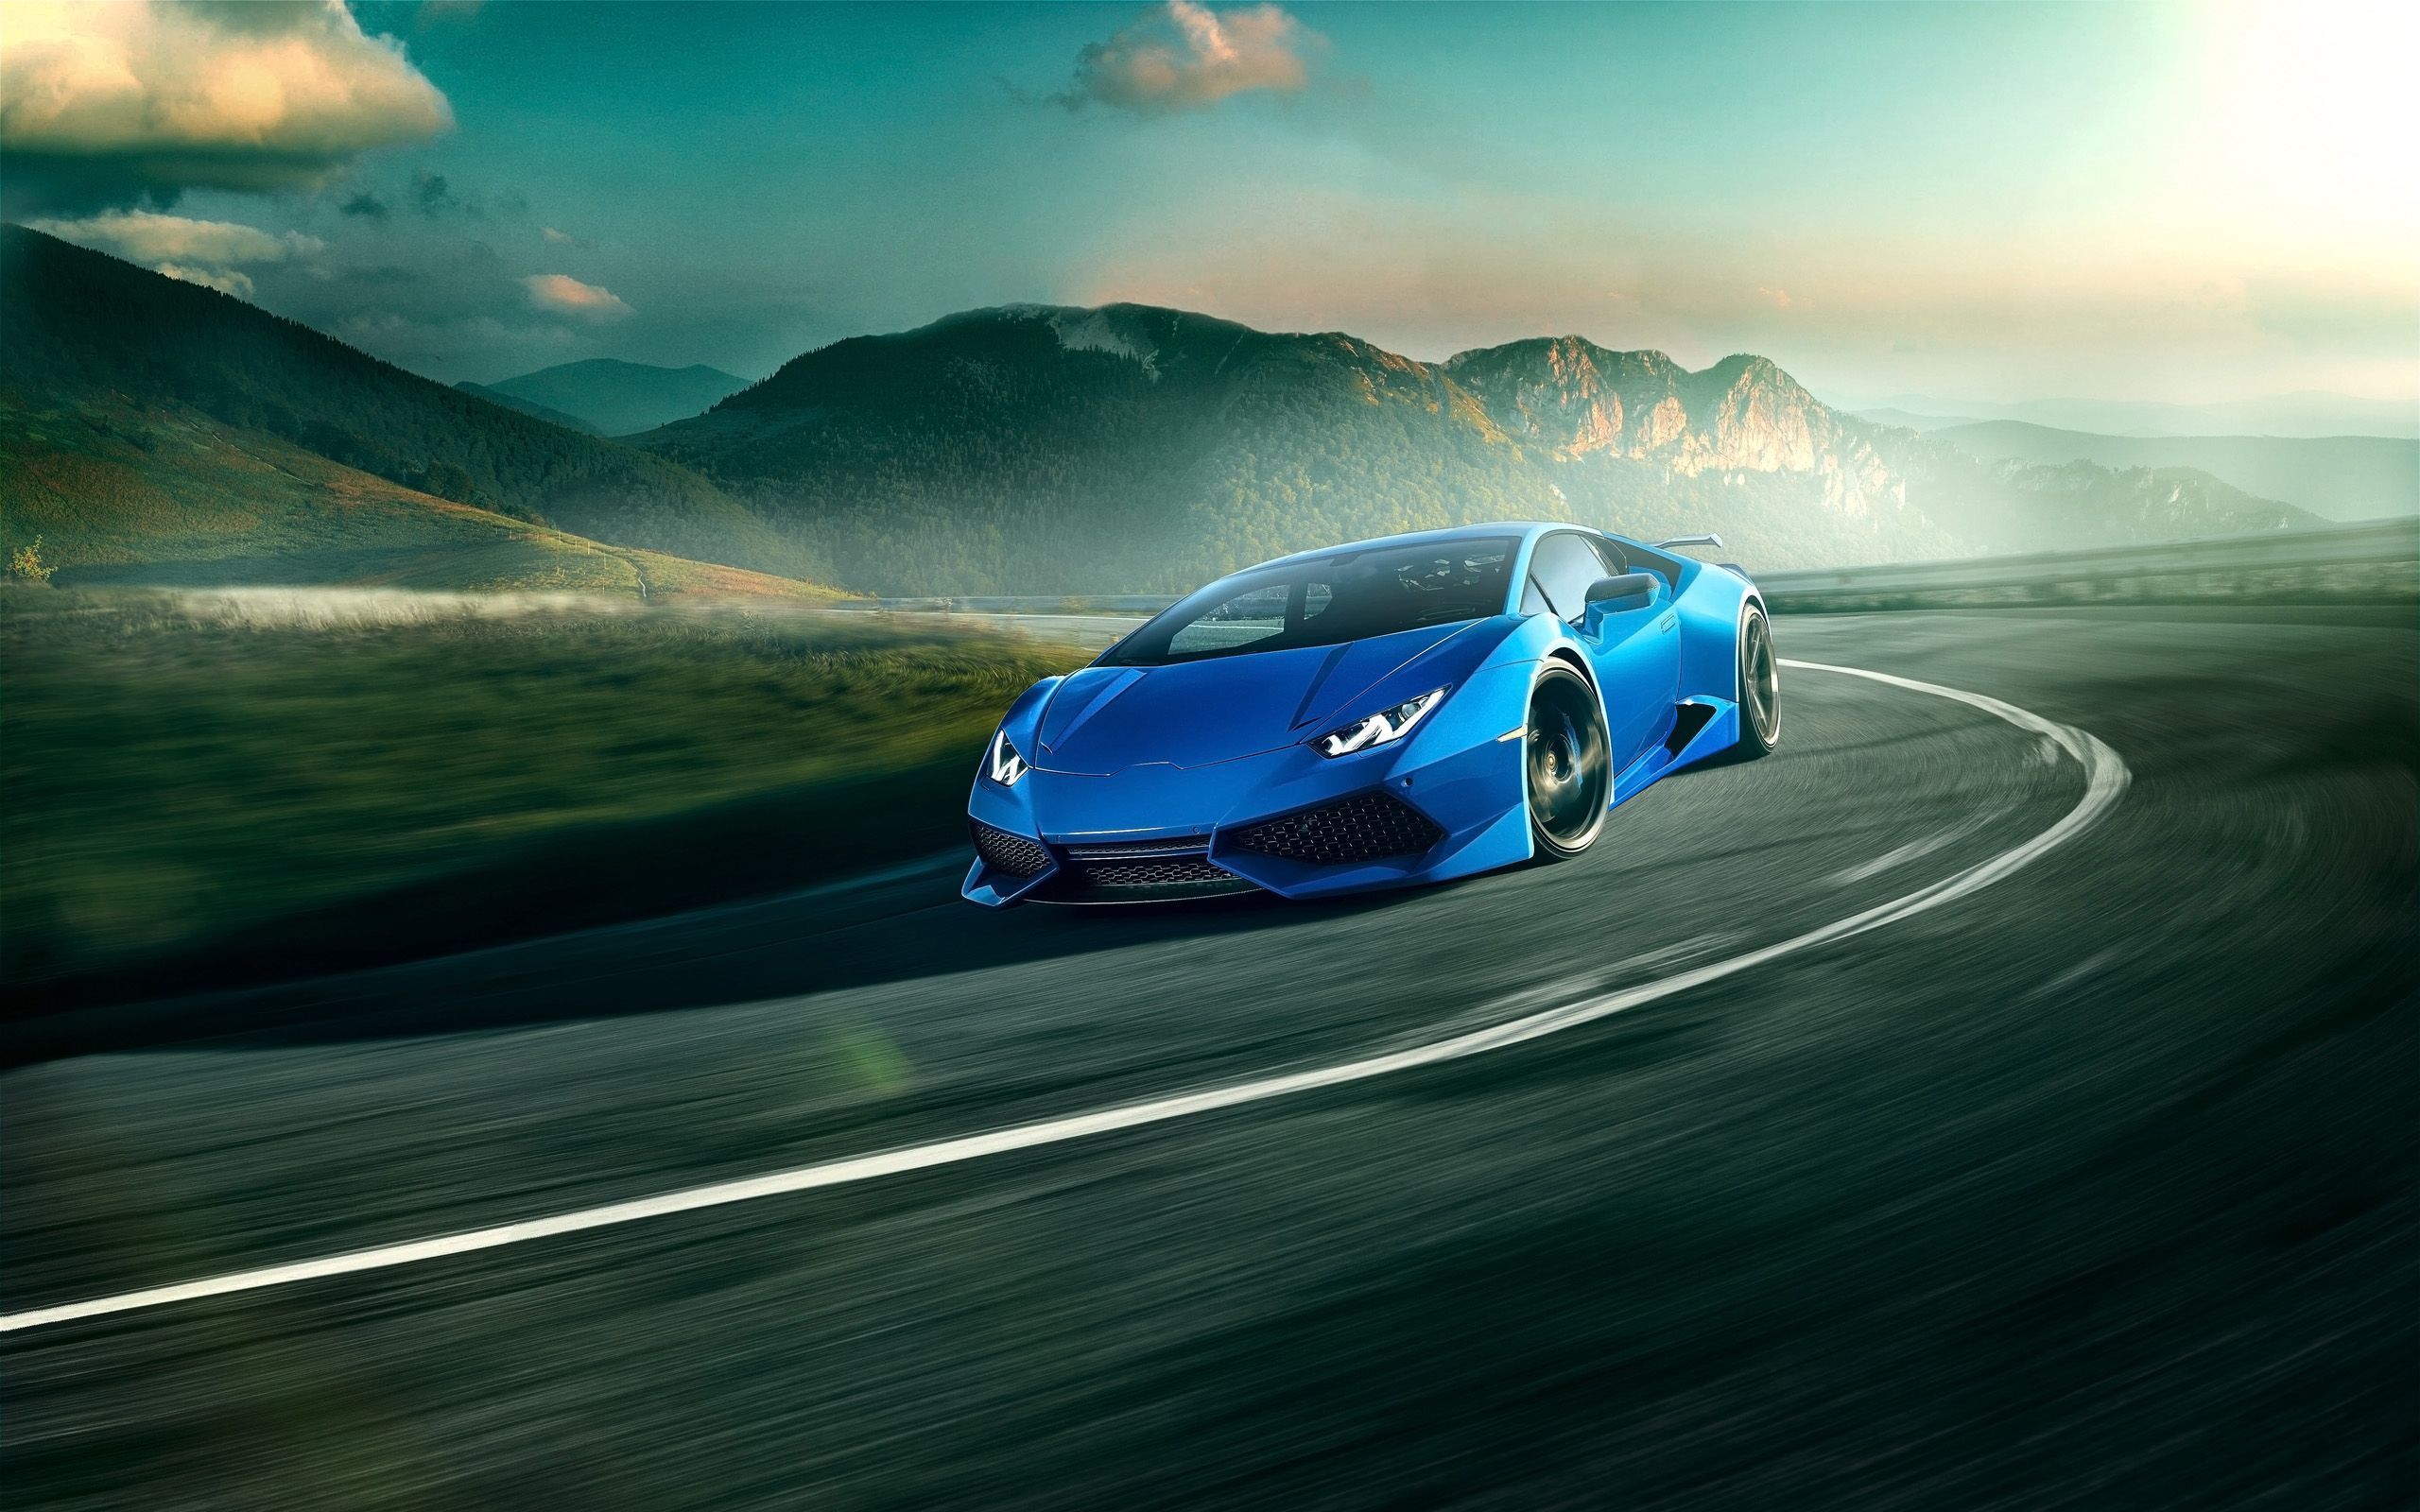 Cool Lambo Wallpapers Top Free Cool Lambo Backgrounds